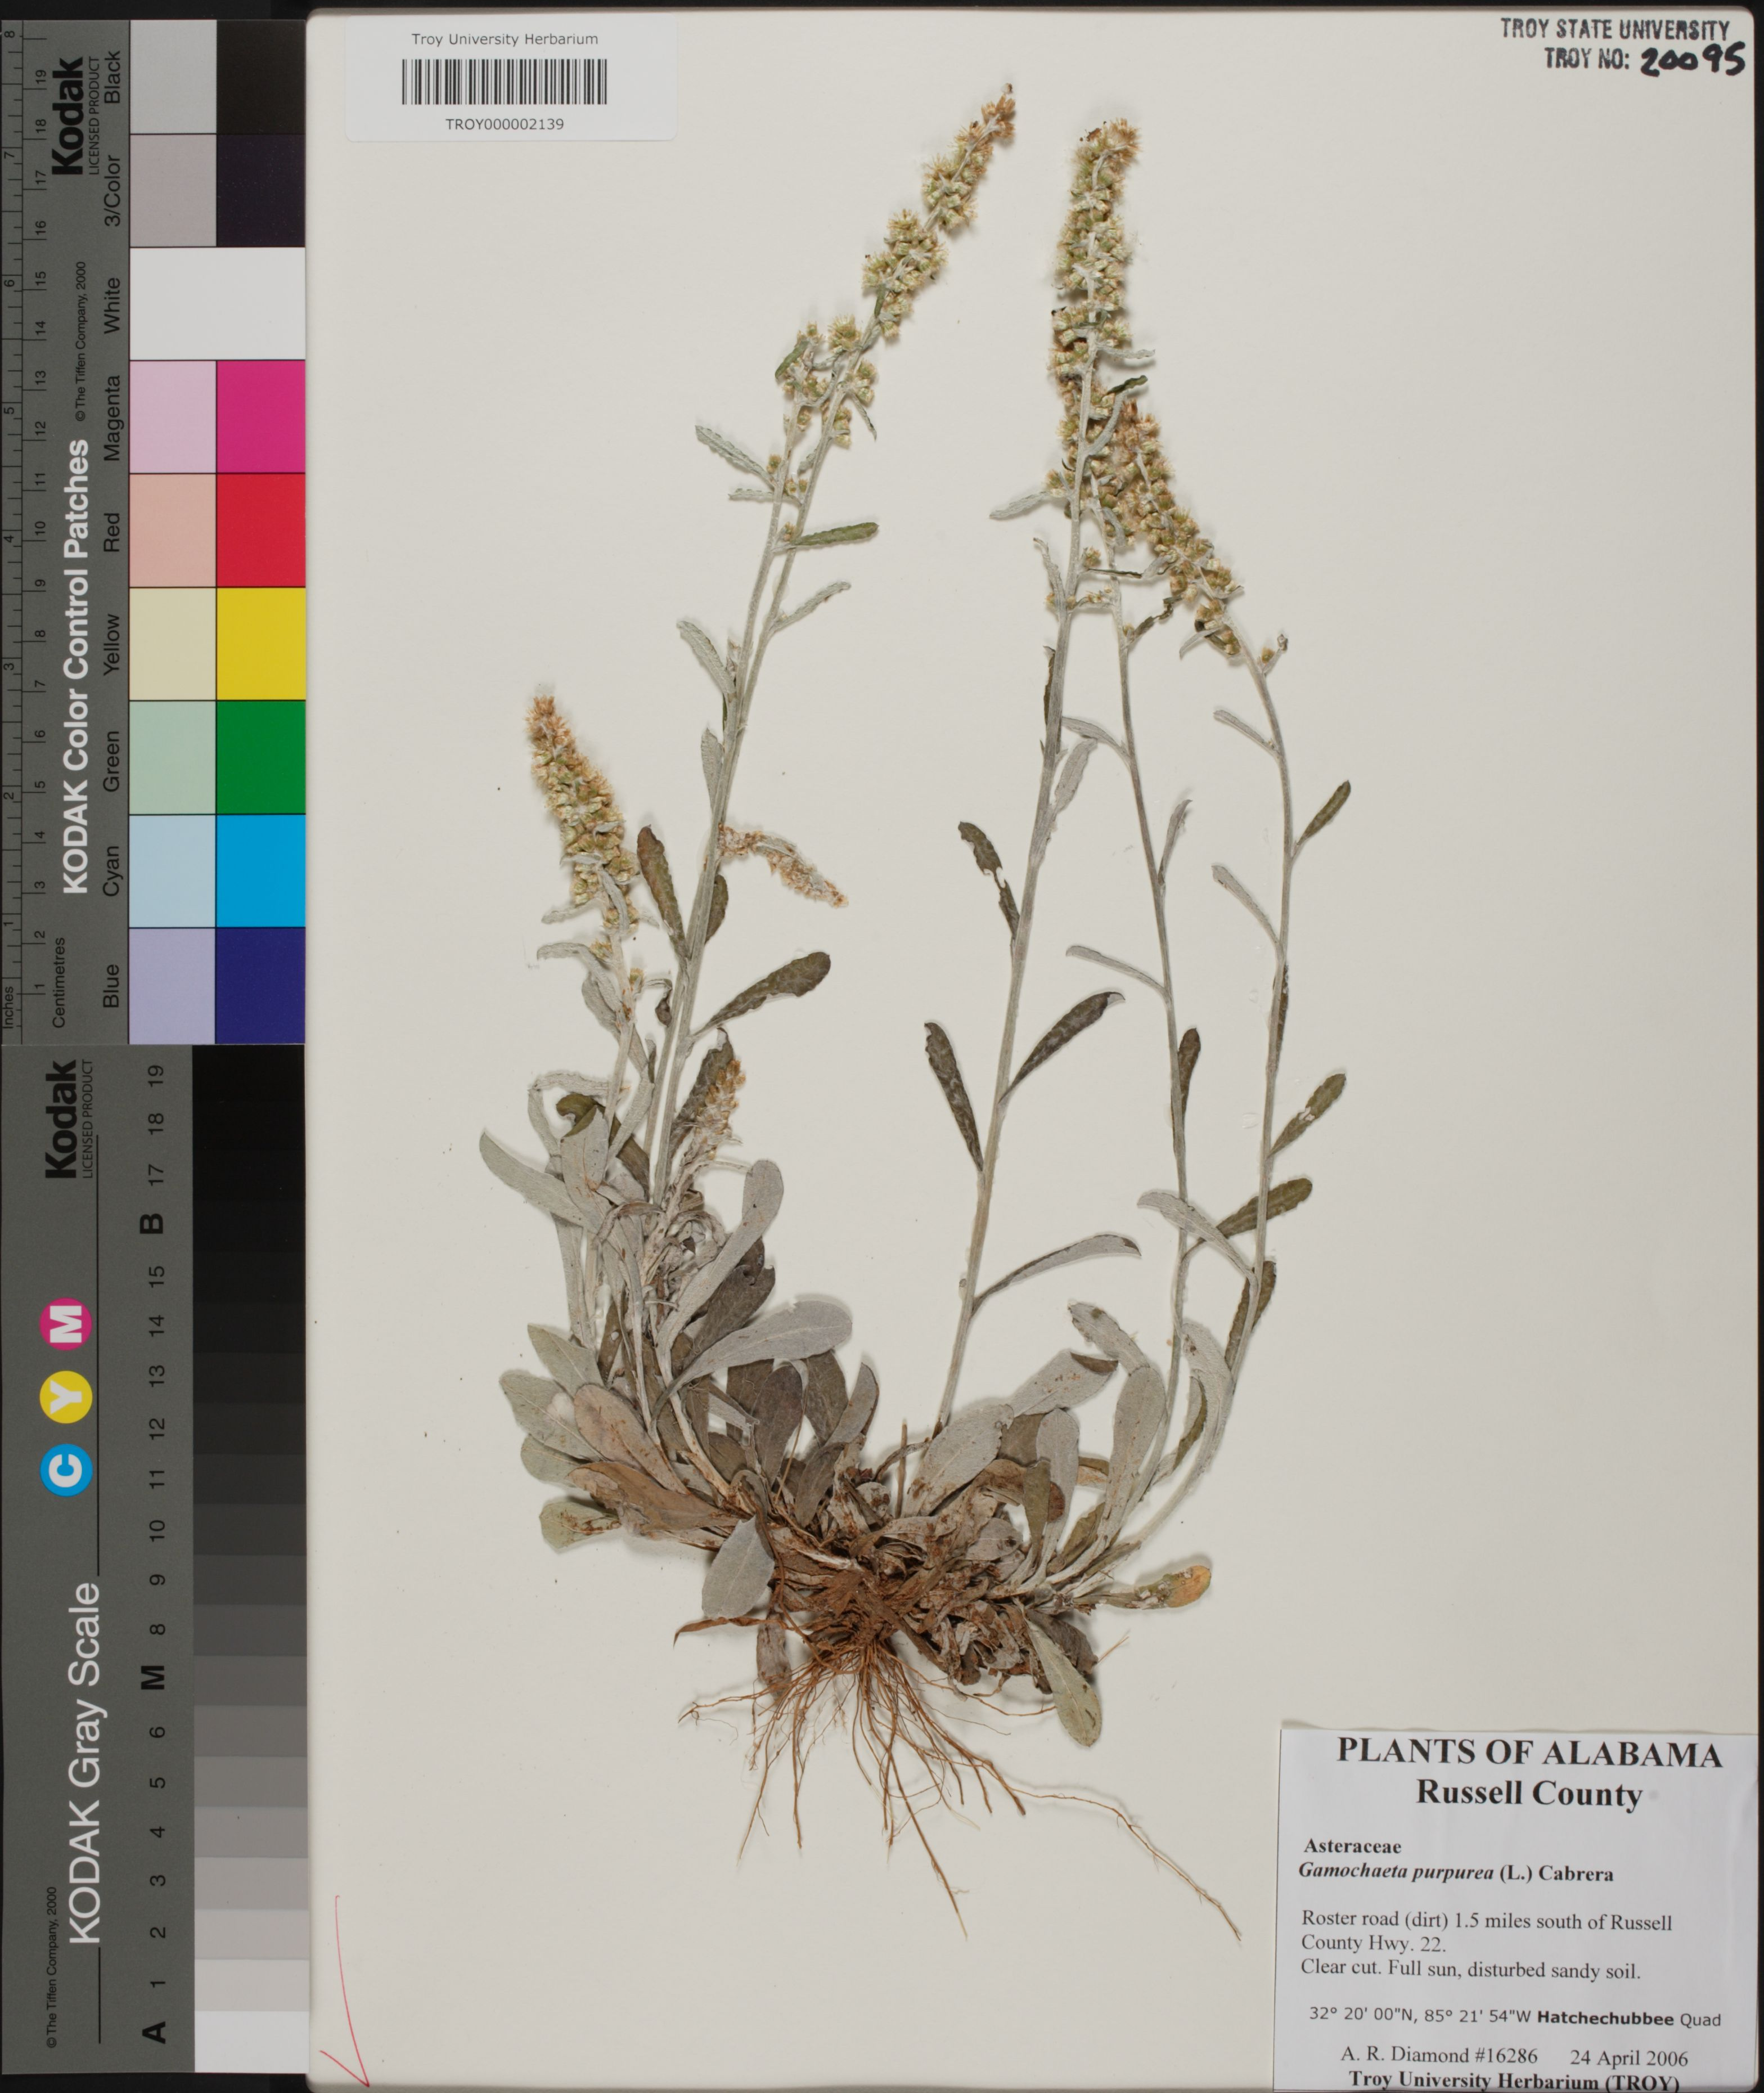 Alabama russell county hatchechubbee - Herbarium